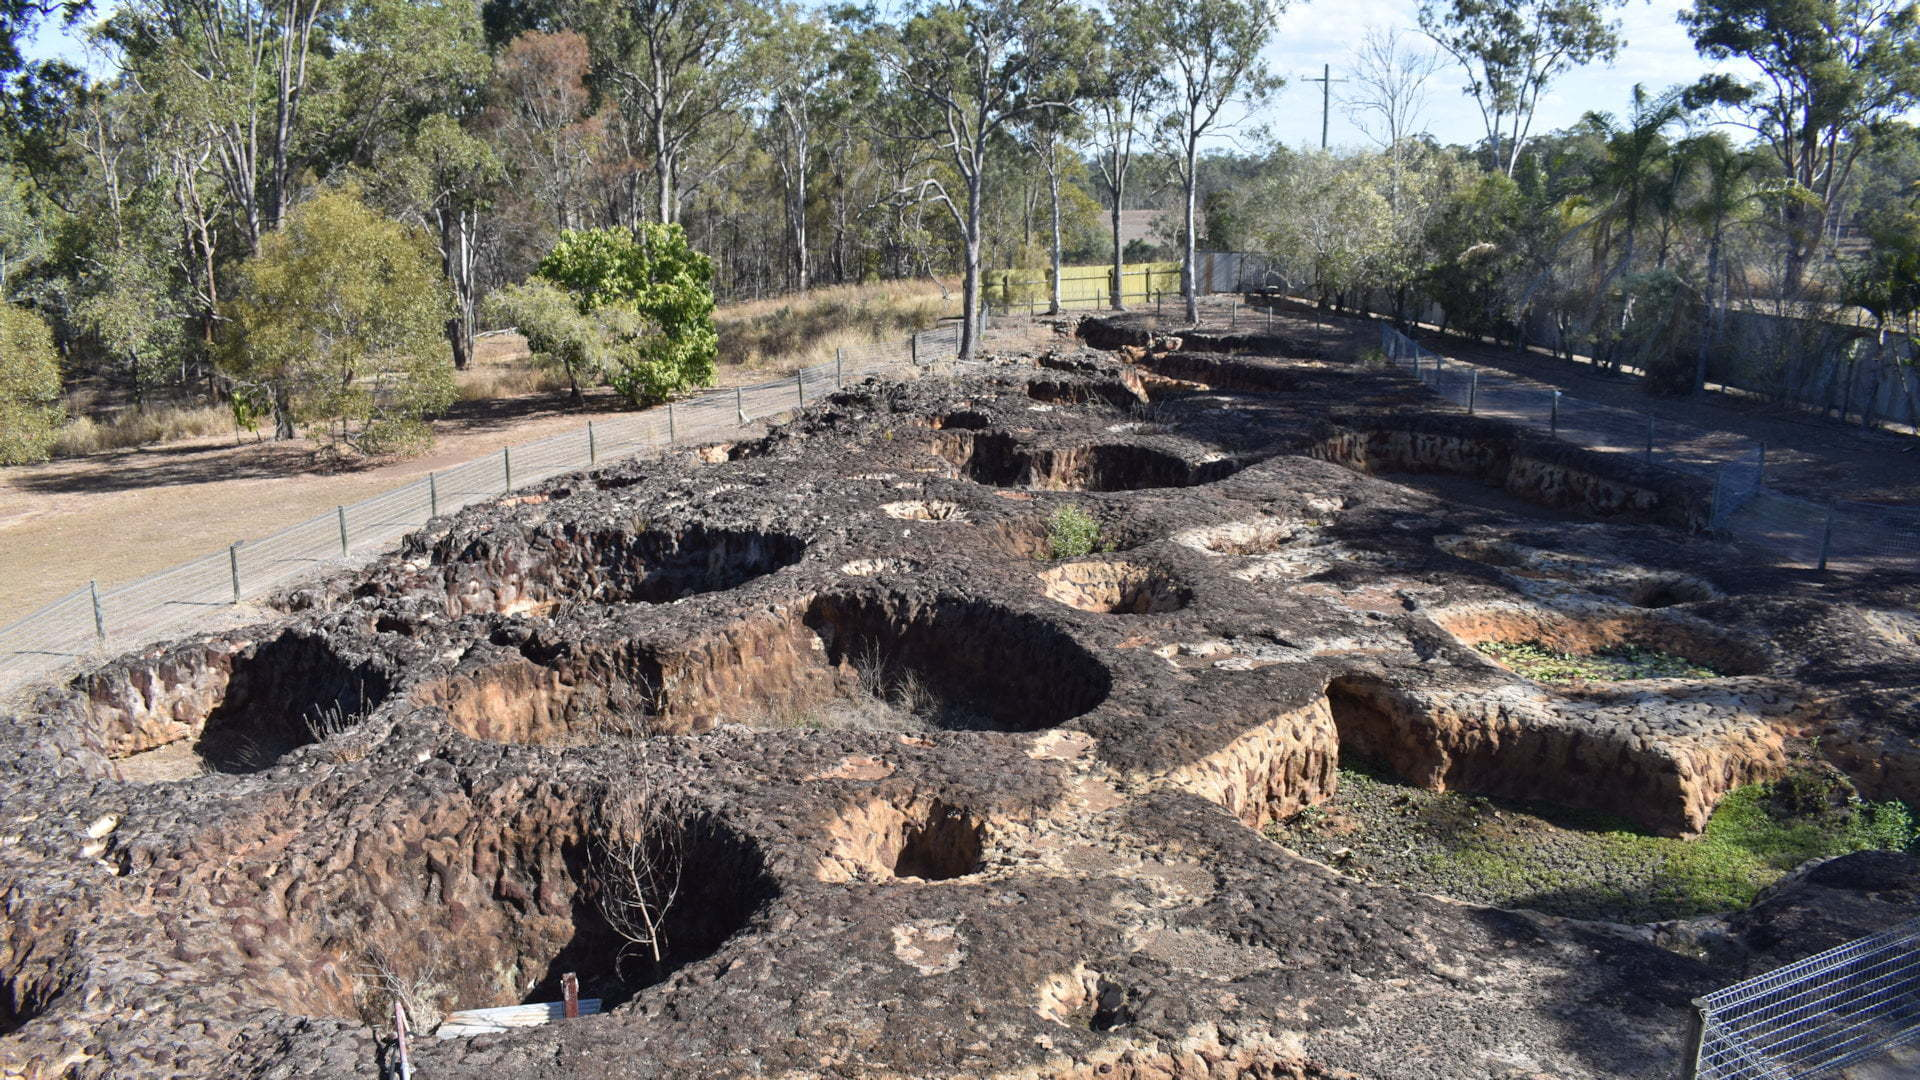 Rock slab with large crater holes, at The Mystery Craters near Bundaberg, a mystery that has baffled scientists across the world since the 1970s